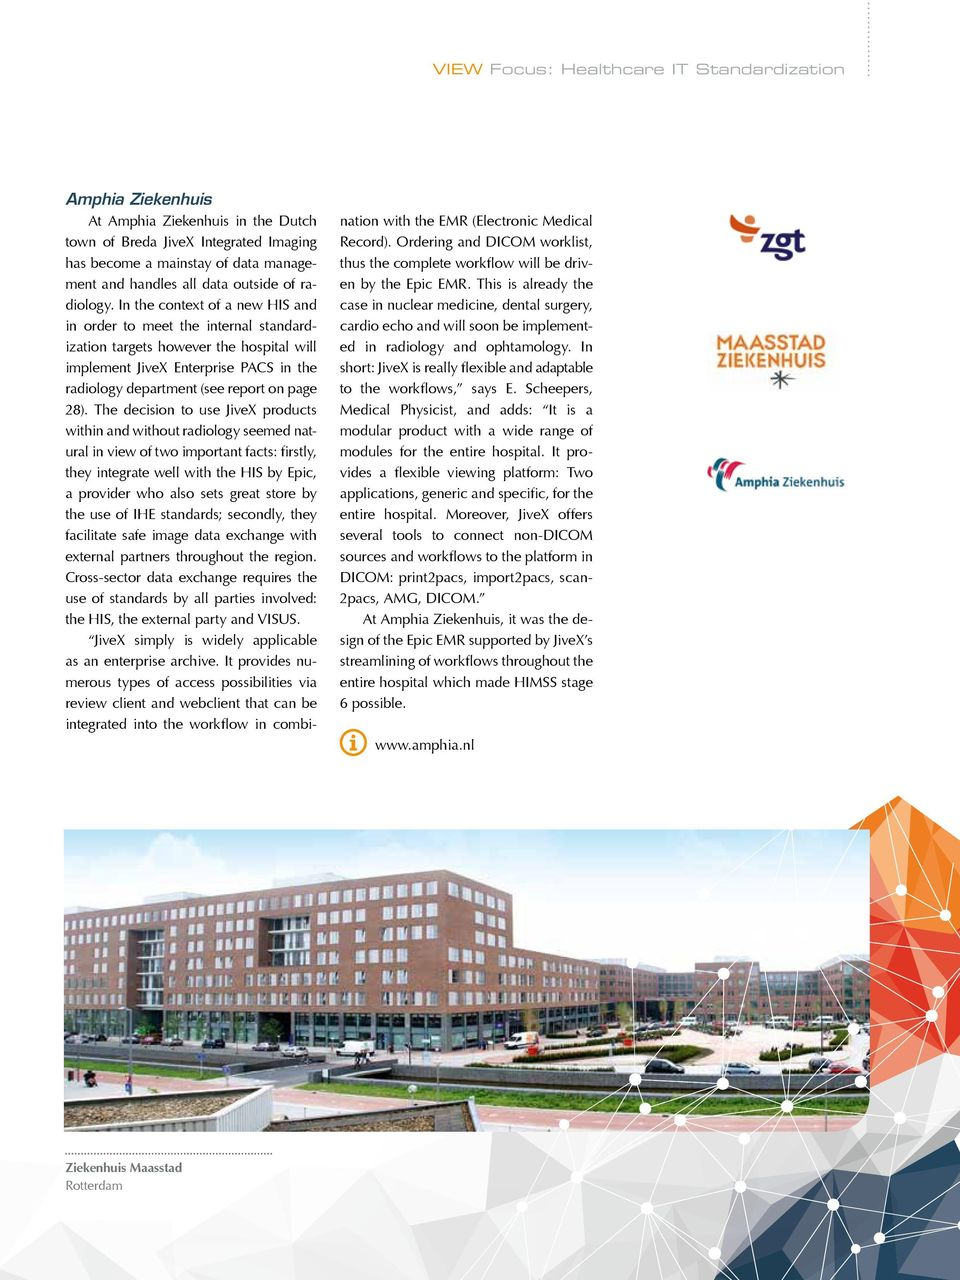 In the context of a new HIS and in order to meet the internal standardization targets however the hospital will implement JiveX Enterprise PACS in the radiology department (see report on page 28).